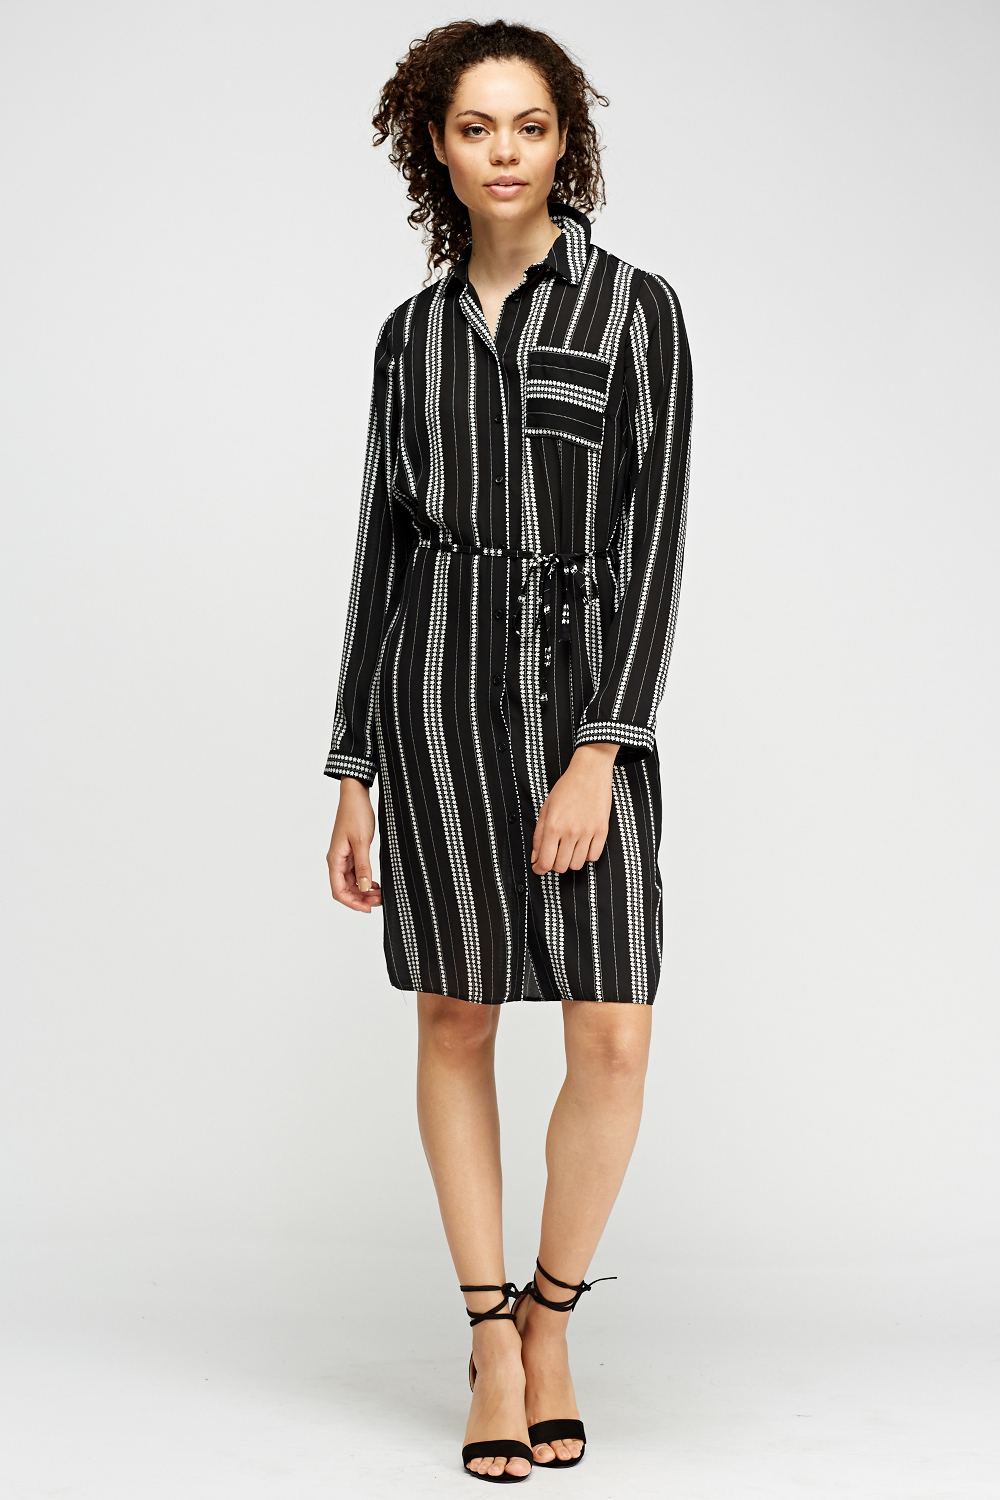 Star printed shirt dress black just 5 for Where to buy a dress shirt